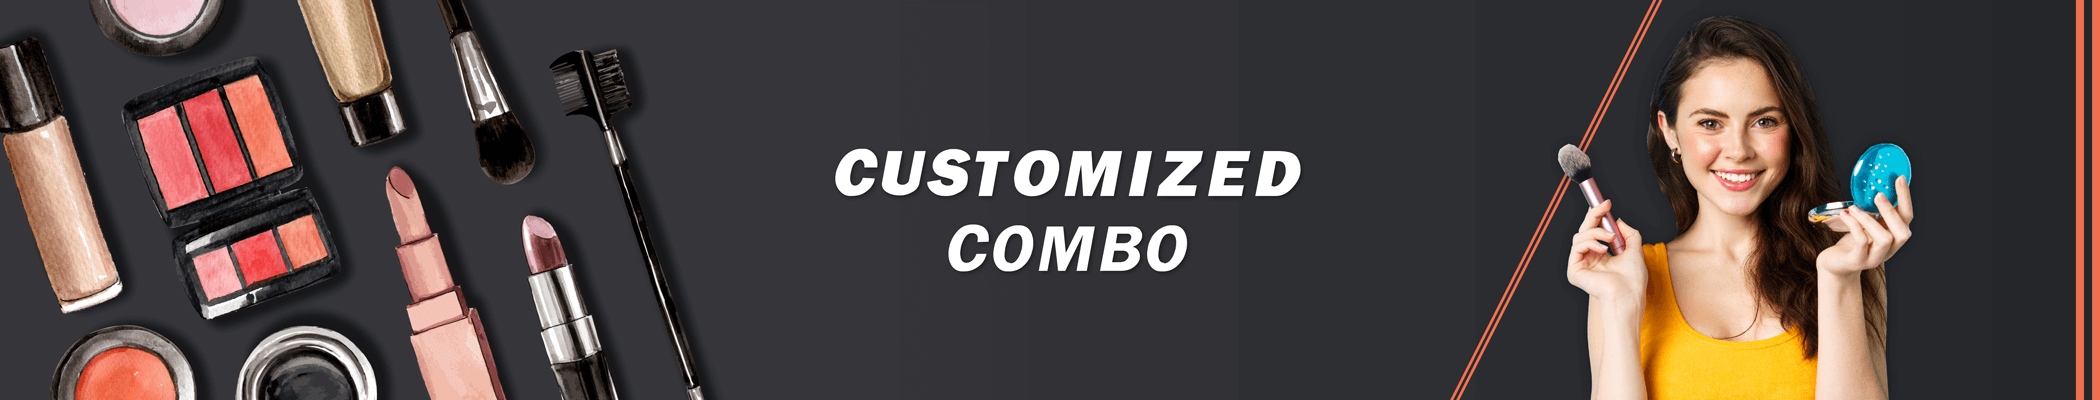 Combo Category Banner